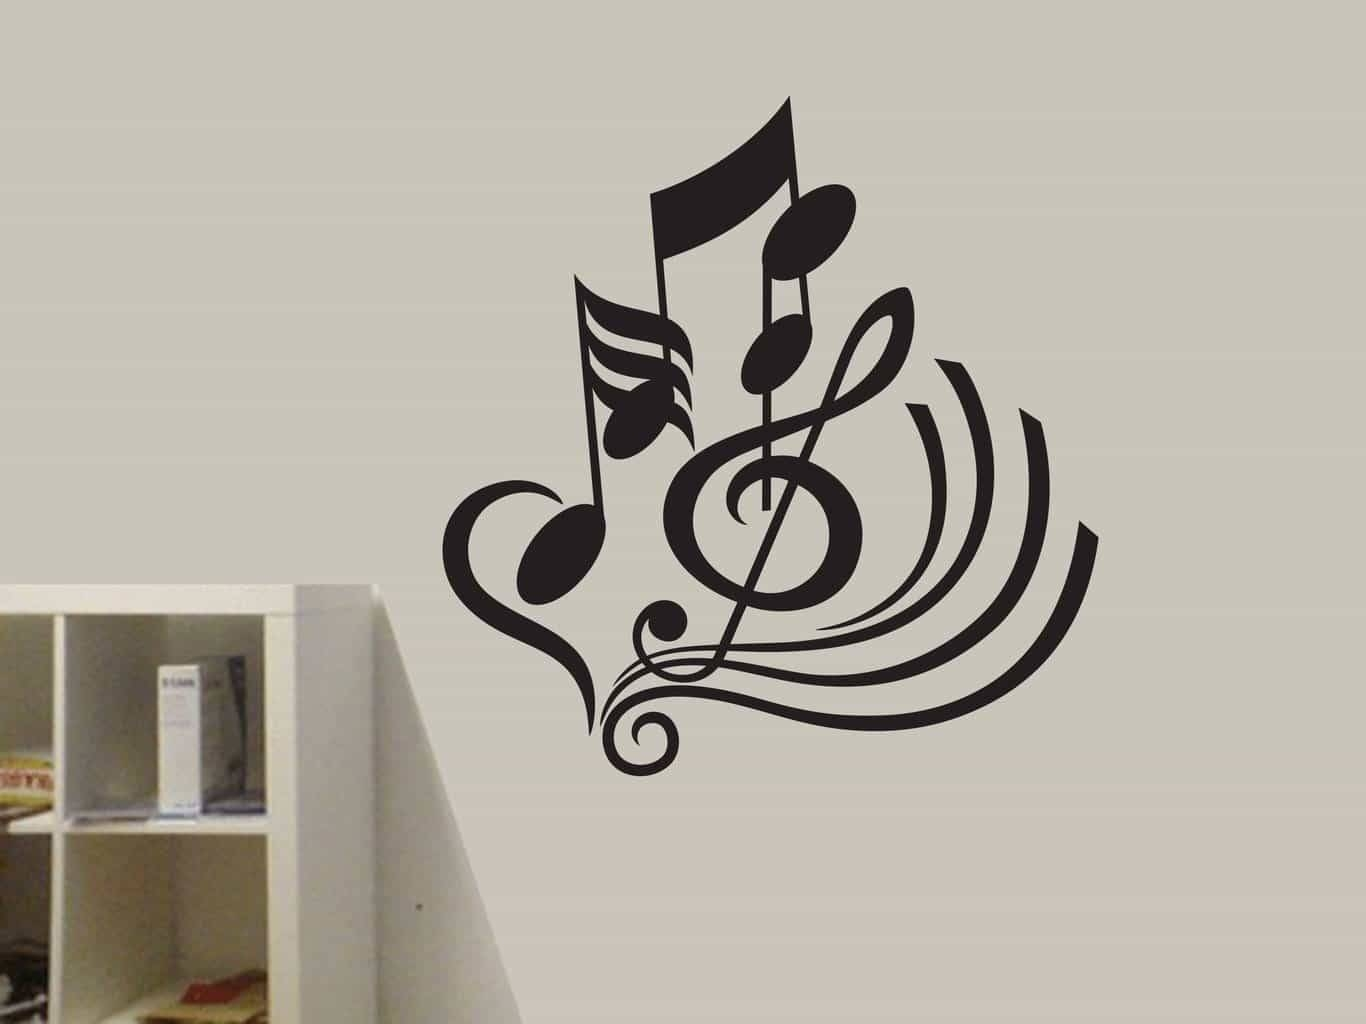 Musical Notes Wall Art Decal Sticker With Latest Music Note Wall Art (View 9 of 20)